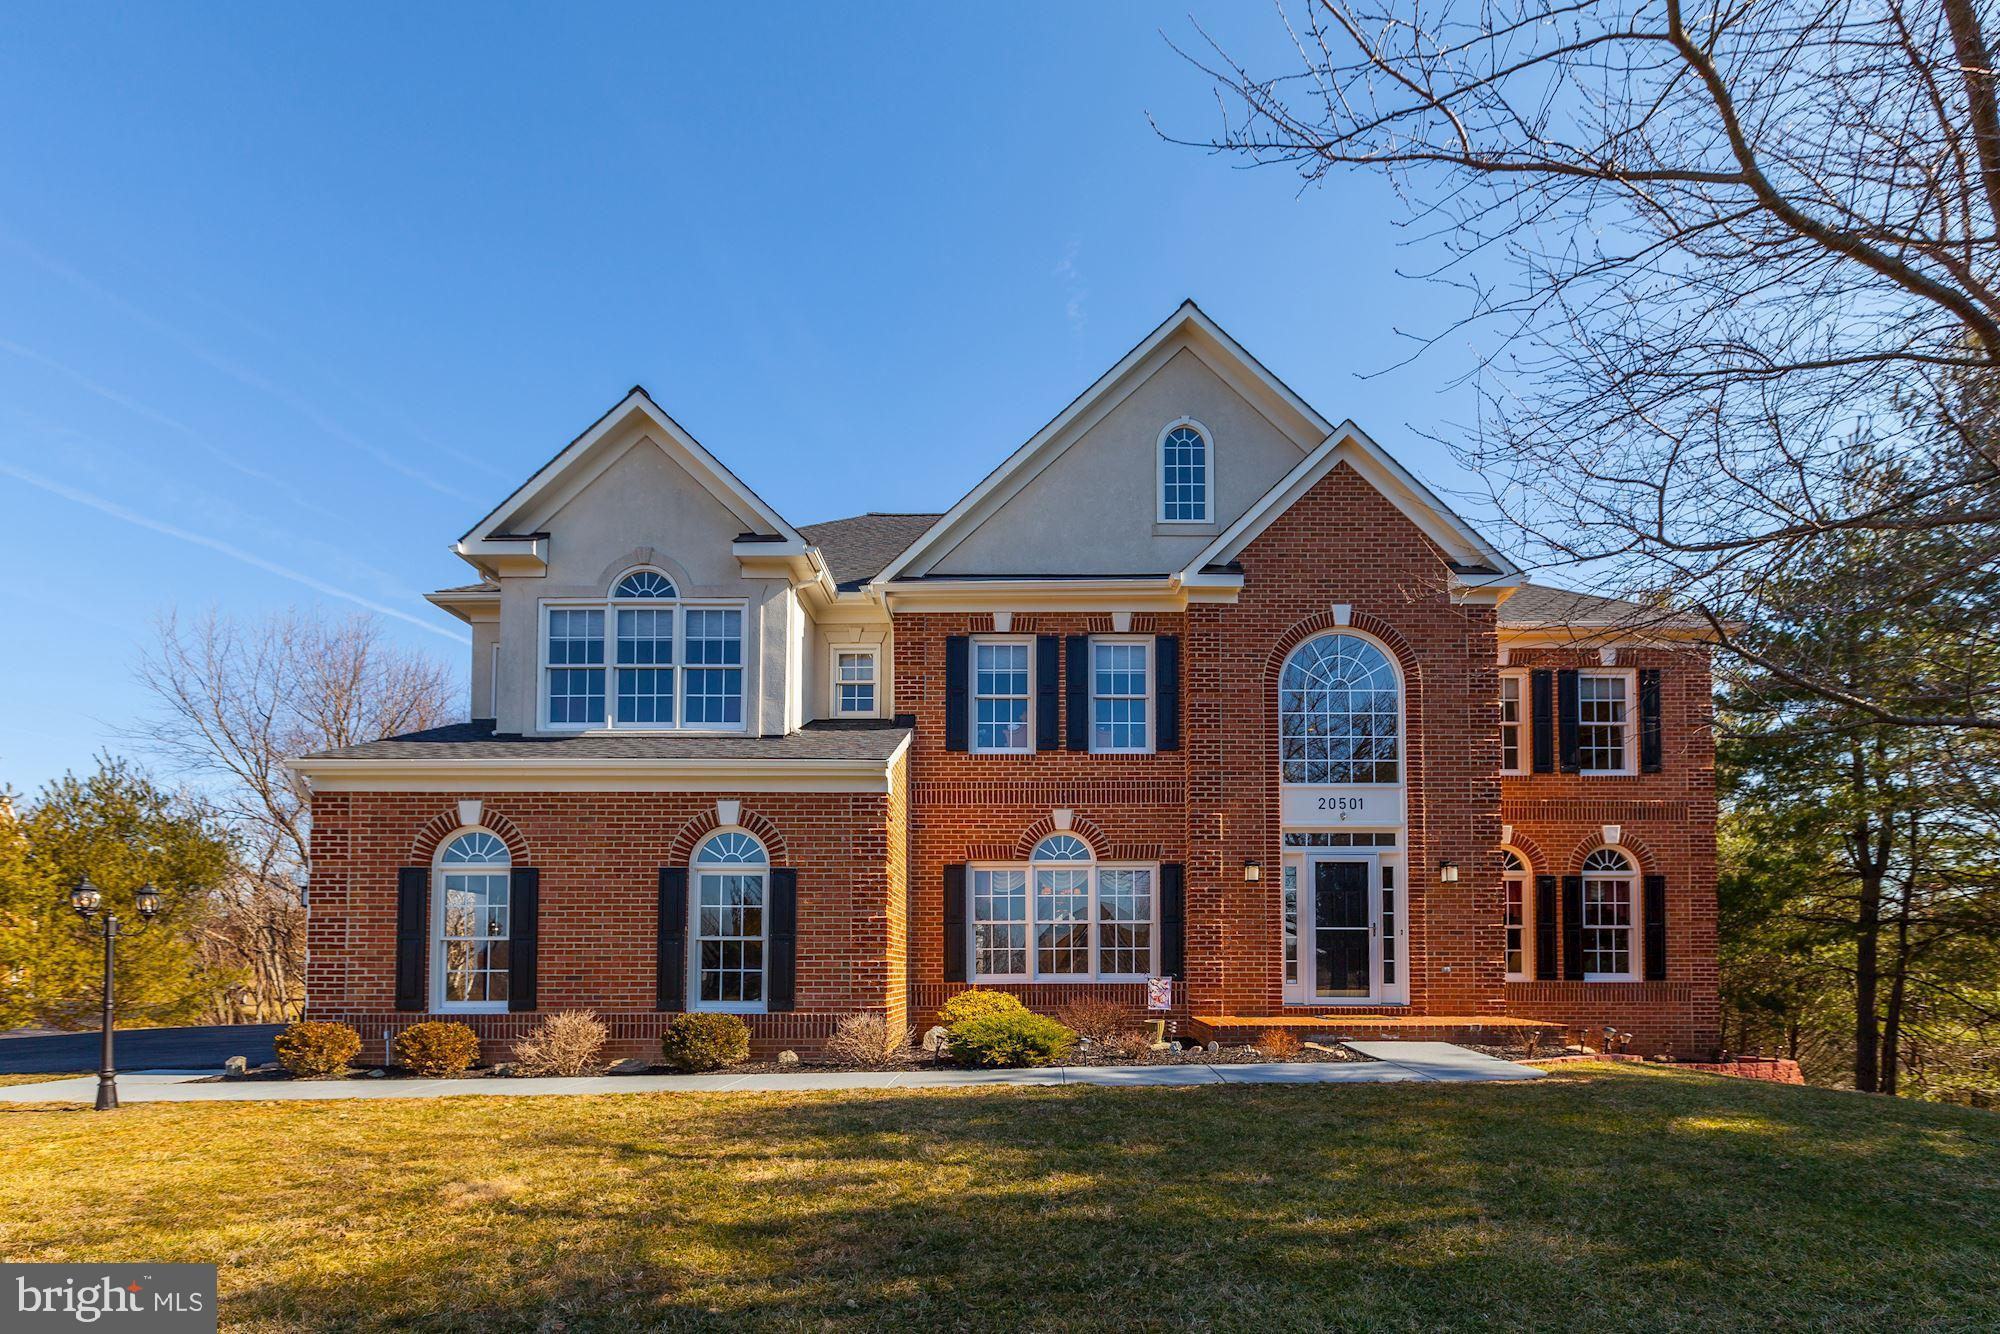 20501 BORDLY COURT, BROOKEVILLE, MD 20833